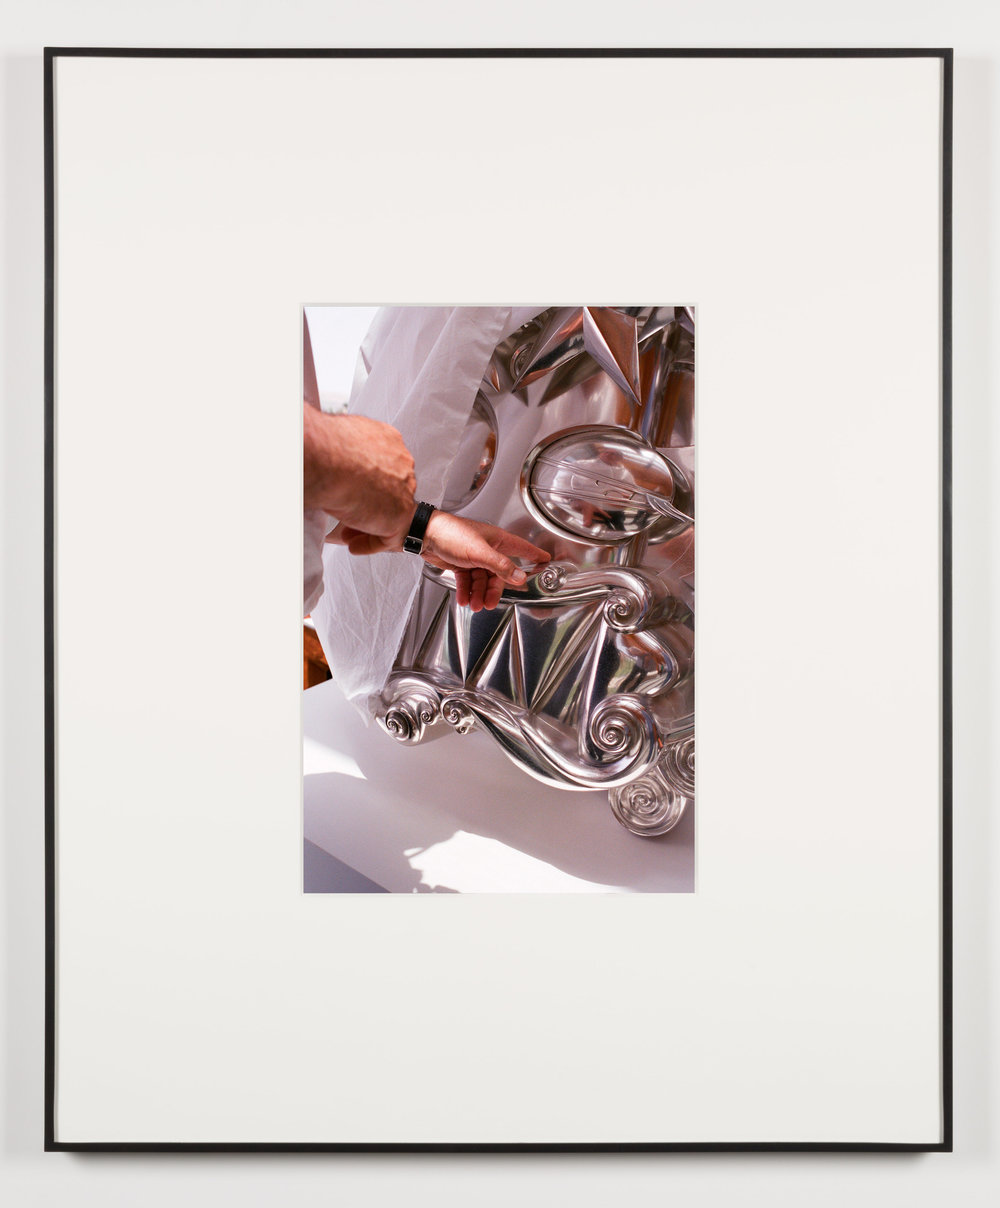 Alphabet der Leidenschaft (Beirut, Lebanon, June 1, 2013)   2014  Chromogenic print  20 x 13 1/2 inches   Art Handling, 2011–    Selected Bodies of Work, 2014